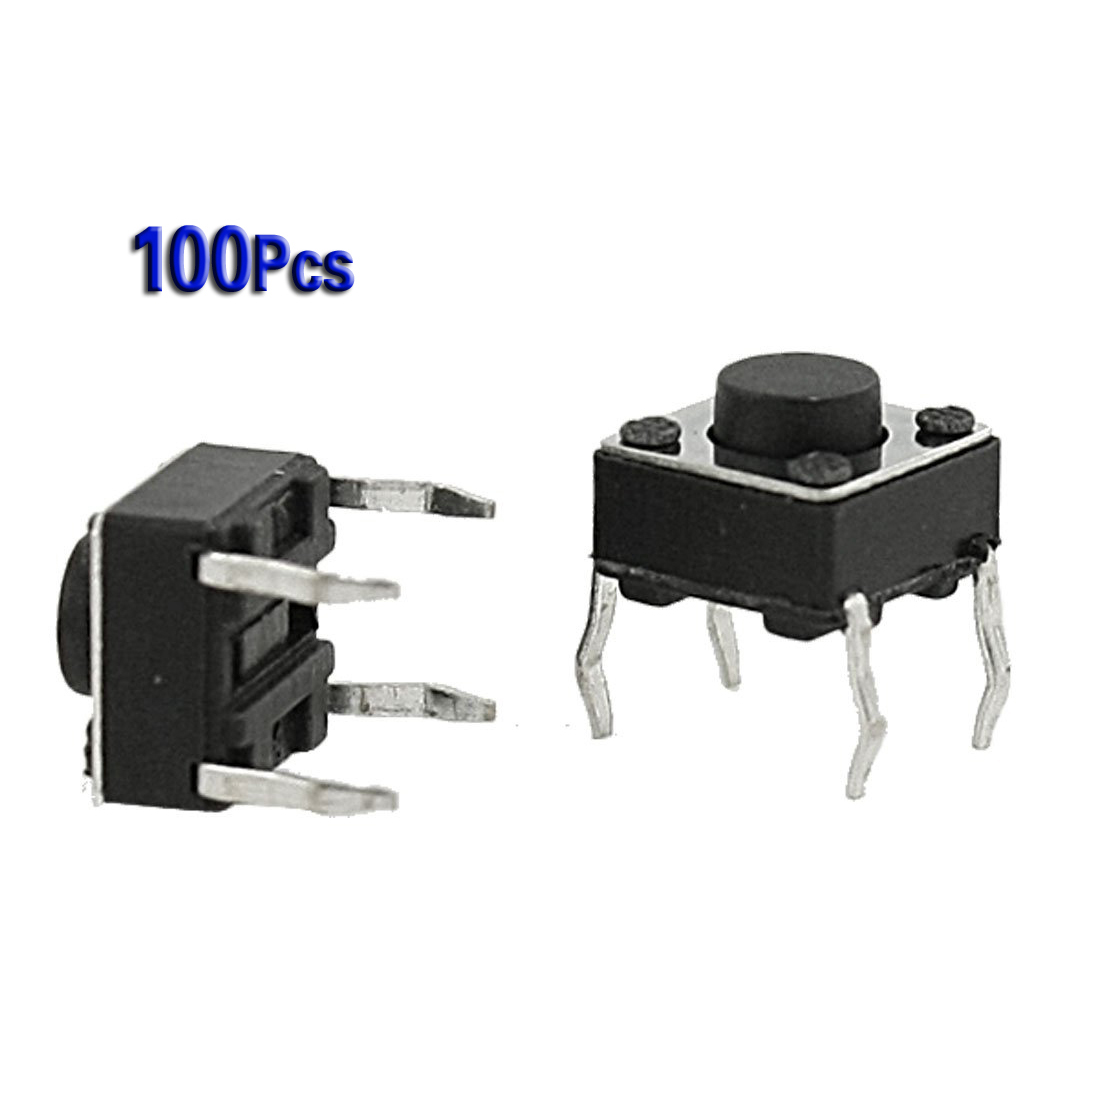 Lighting Accessories Objective Jfbl 100 Pcs 6x6x4.5mm Panel Pcb Momentary Tactile Tact Push Button Switch 4 Pin Dip Diversified In Packaging Switches